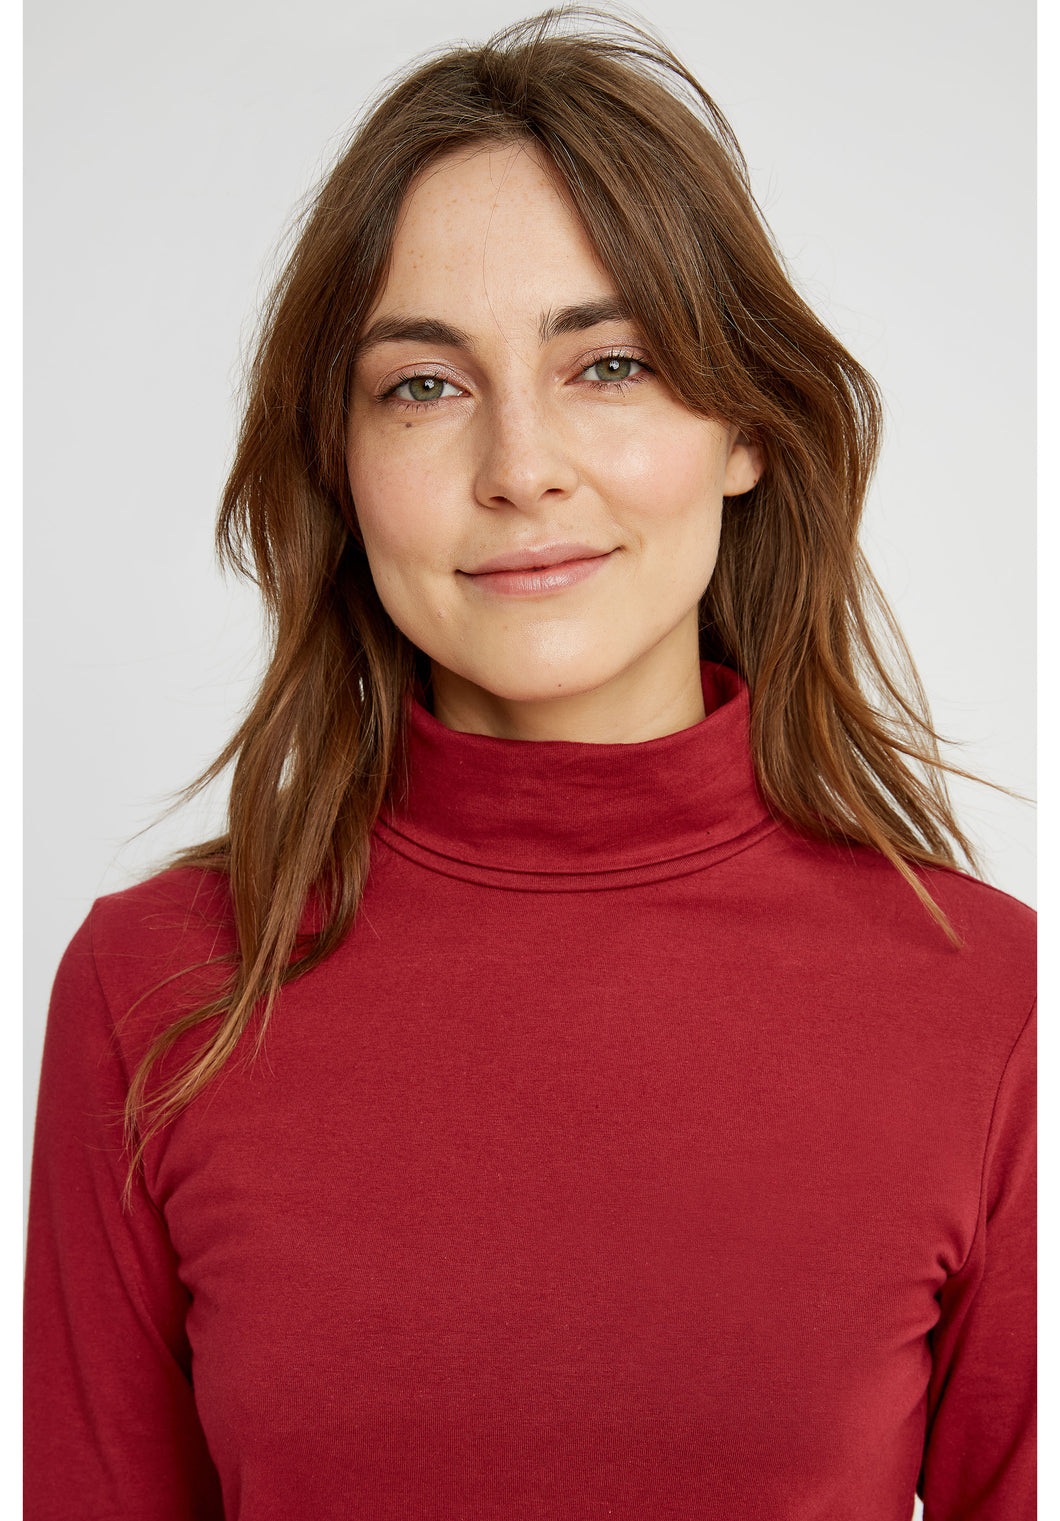 Laila Roll Neck Top - Red